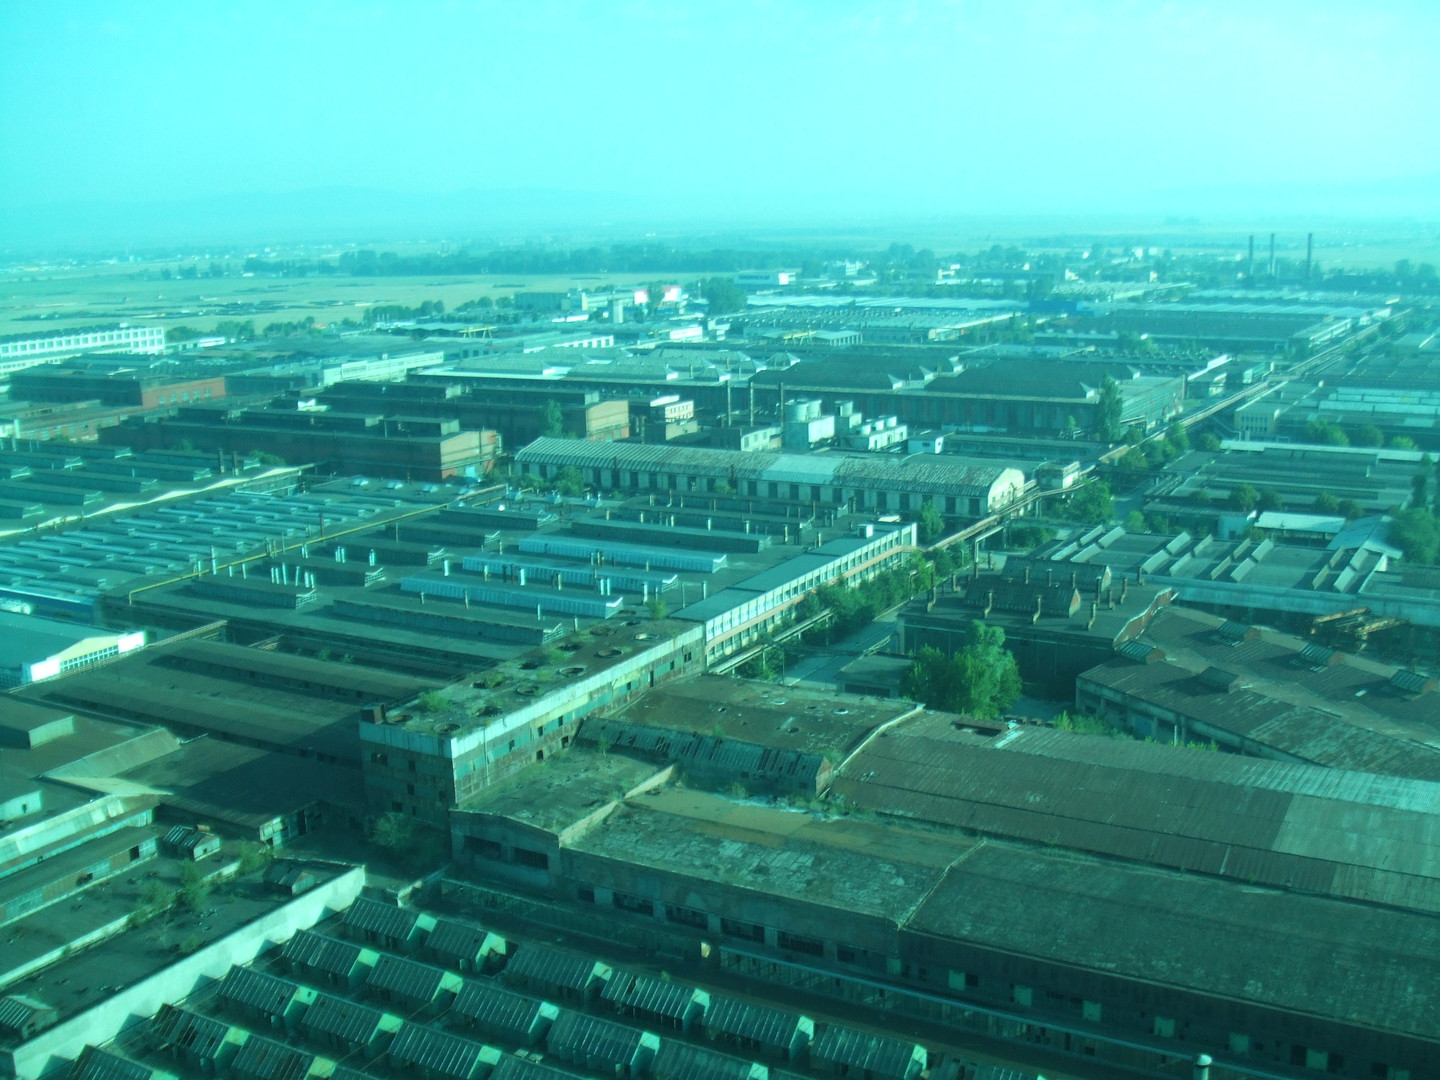 Helicopter View of the Site